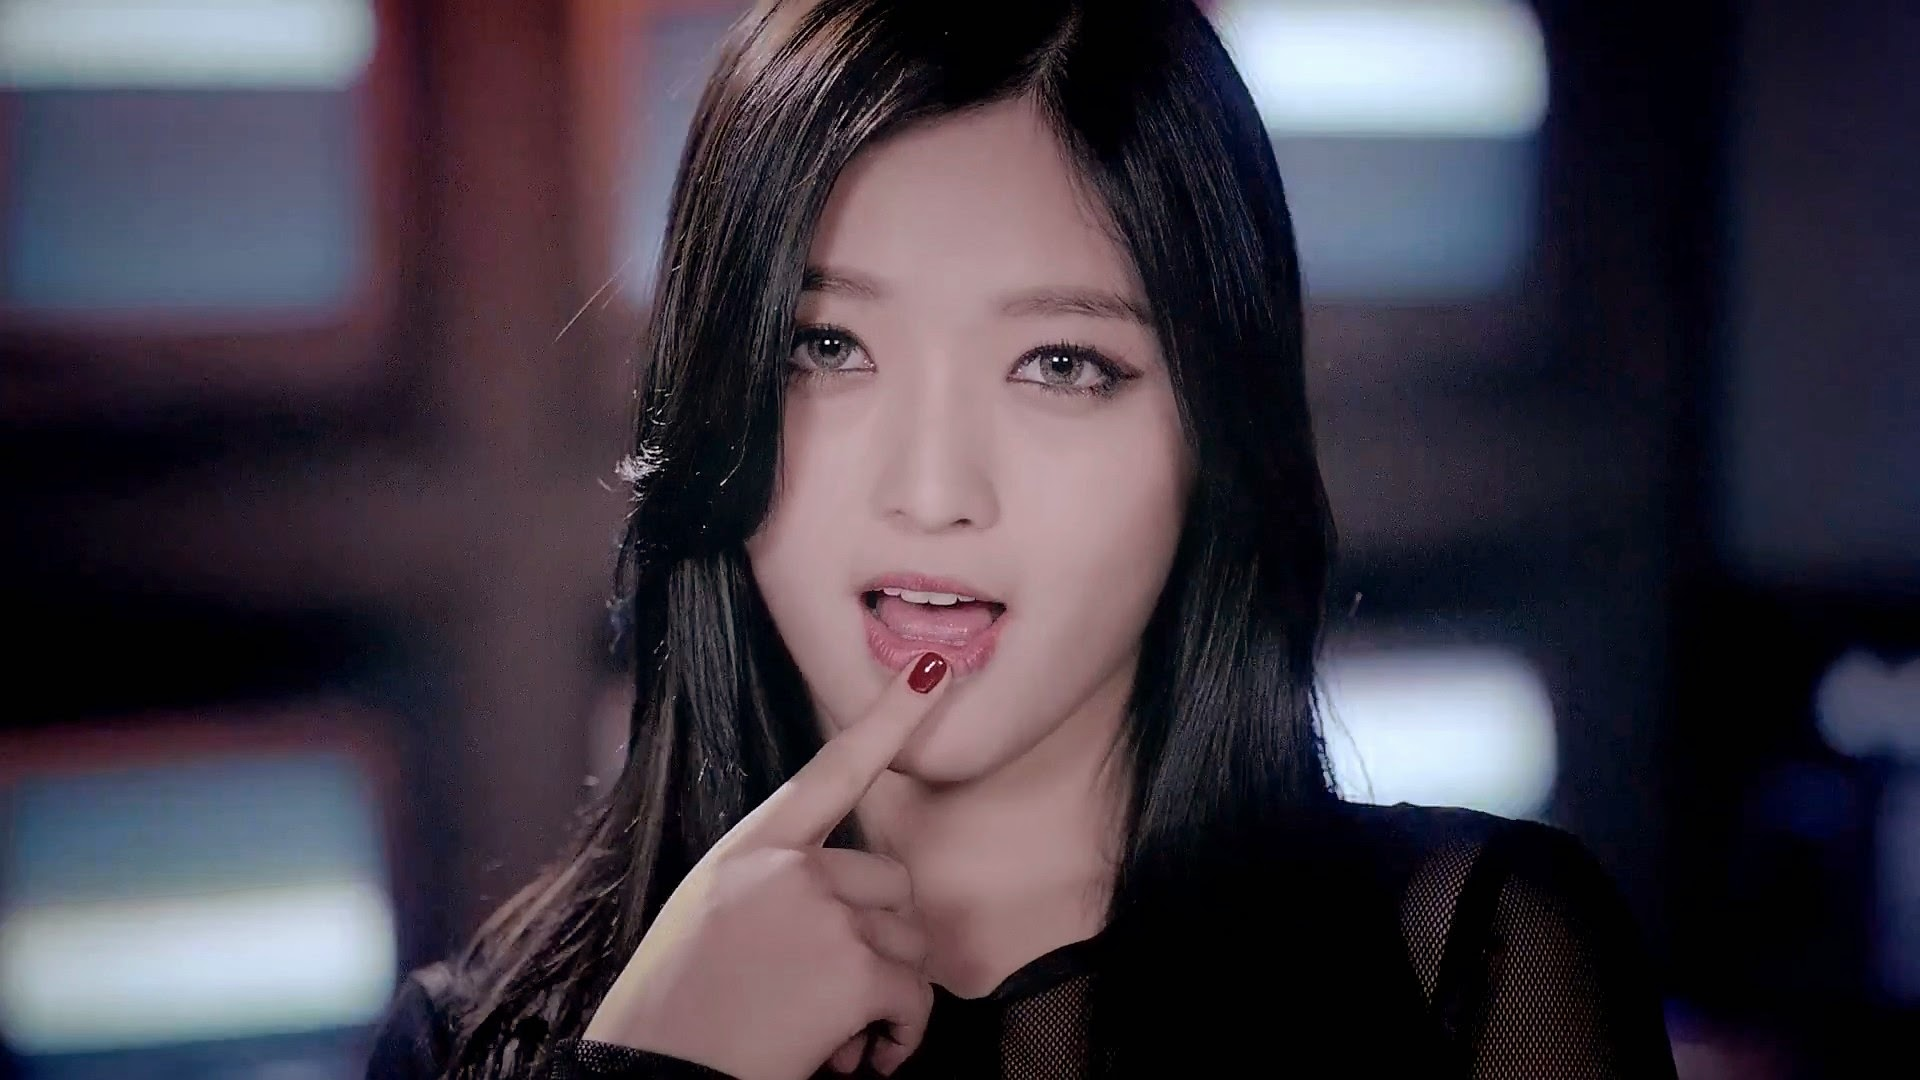 AoA Chanmi Like A Cat